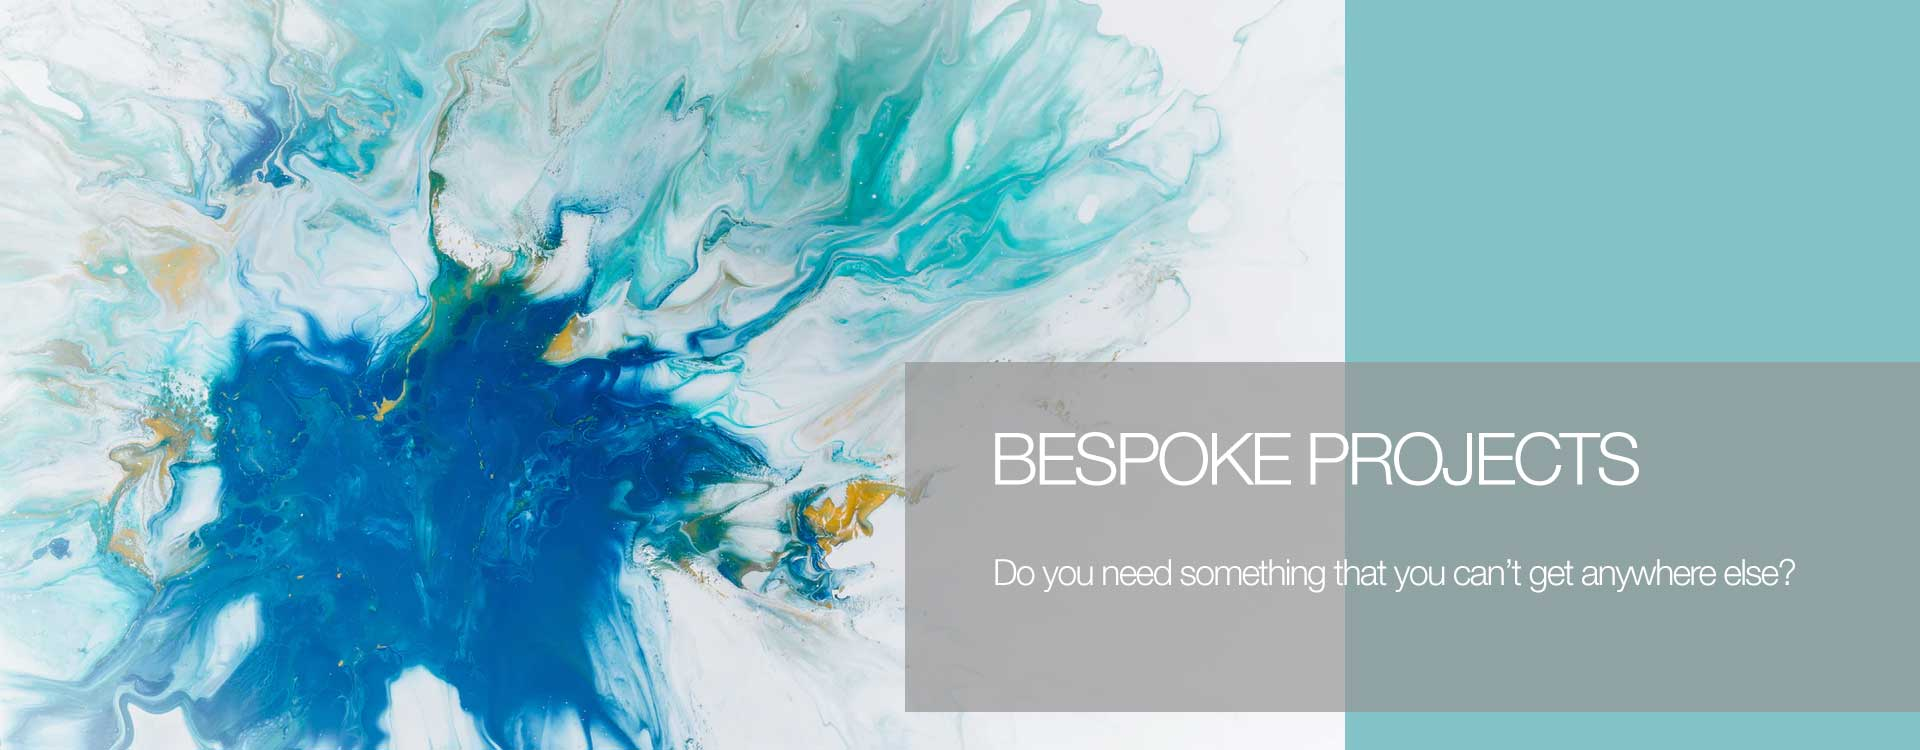 An abstract image that looks like splash of blue, green and yellow paint on a white canvas to represent bespoke projects